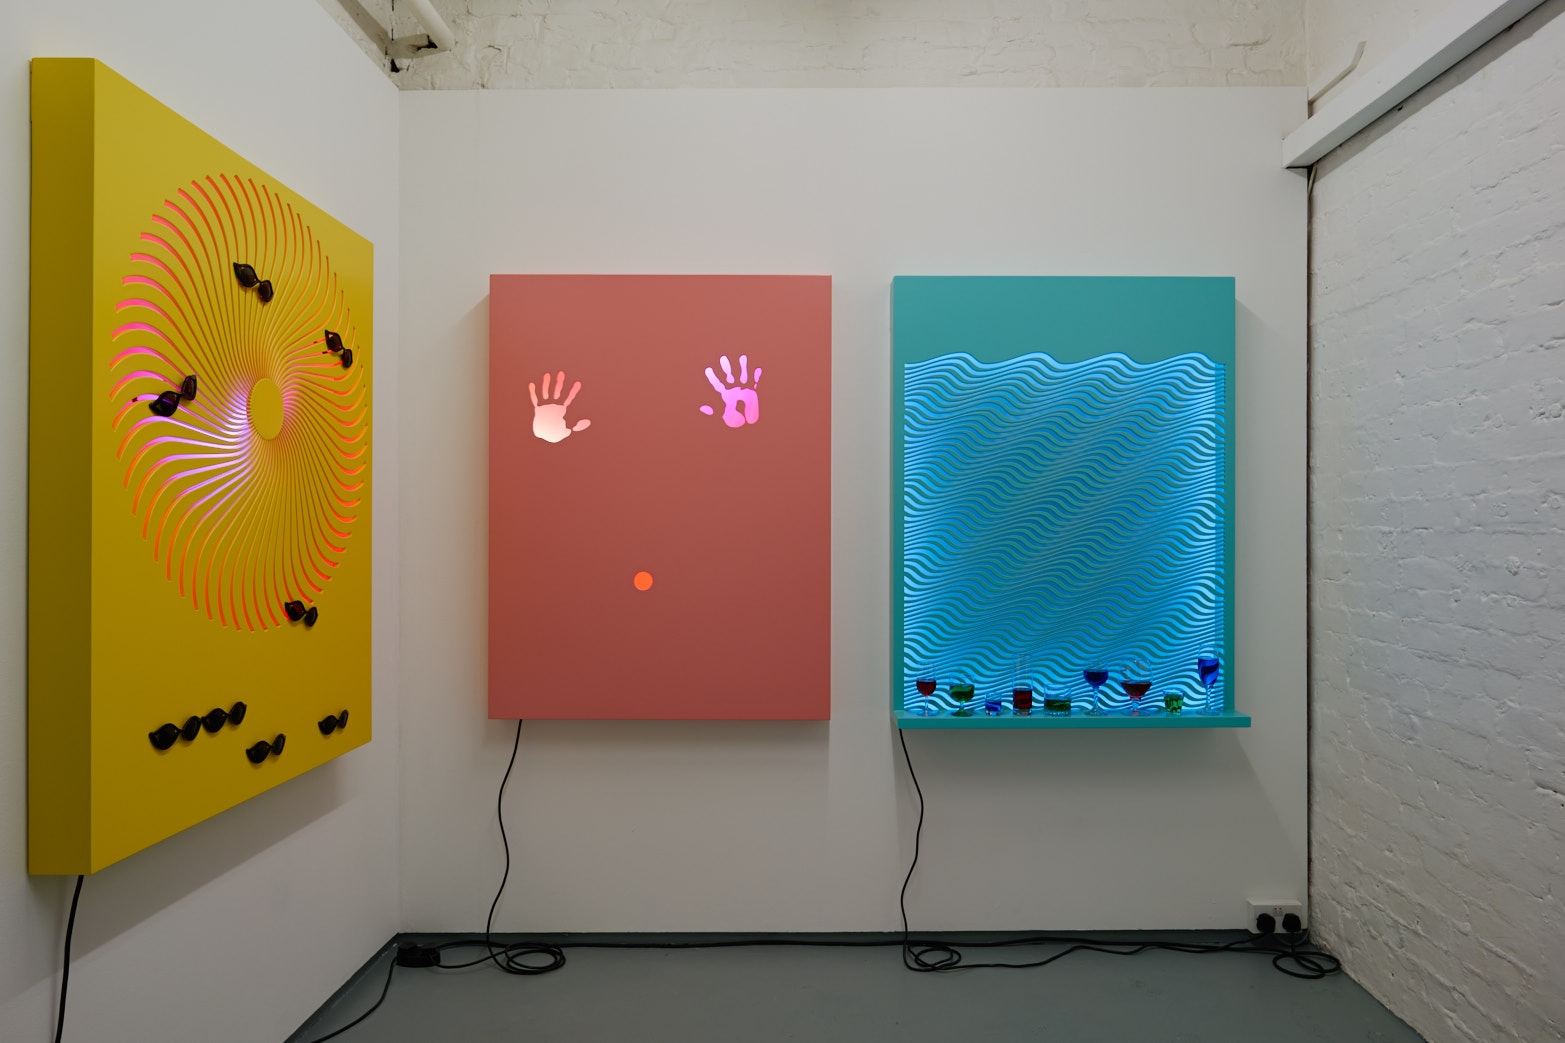 David Ferrando Giraut, Vortex series, 2015. Installation view at Tenderpixel.